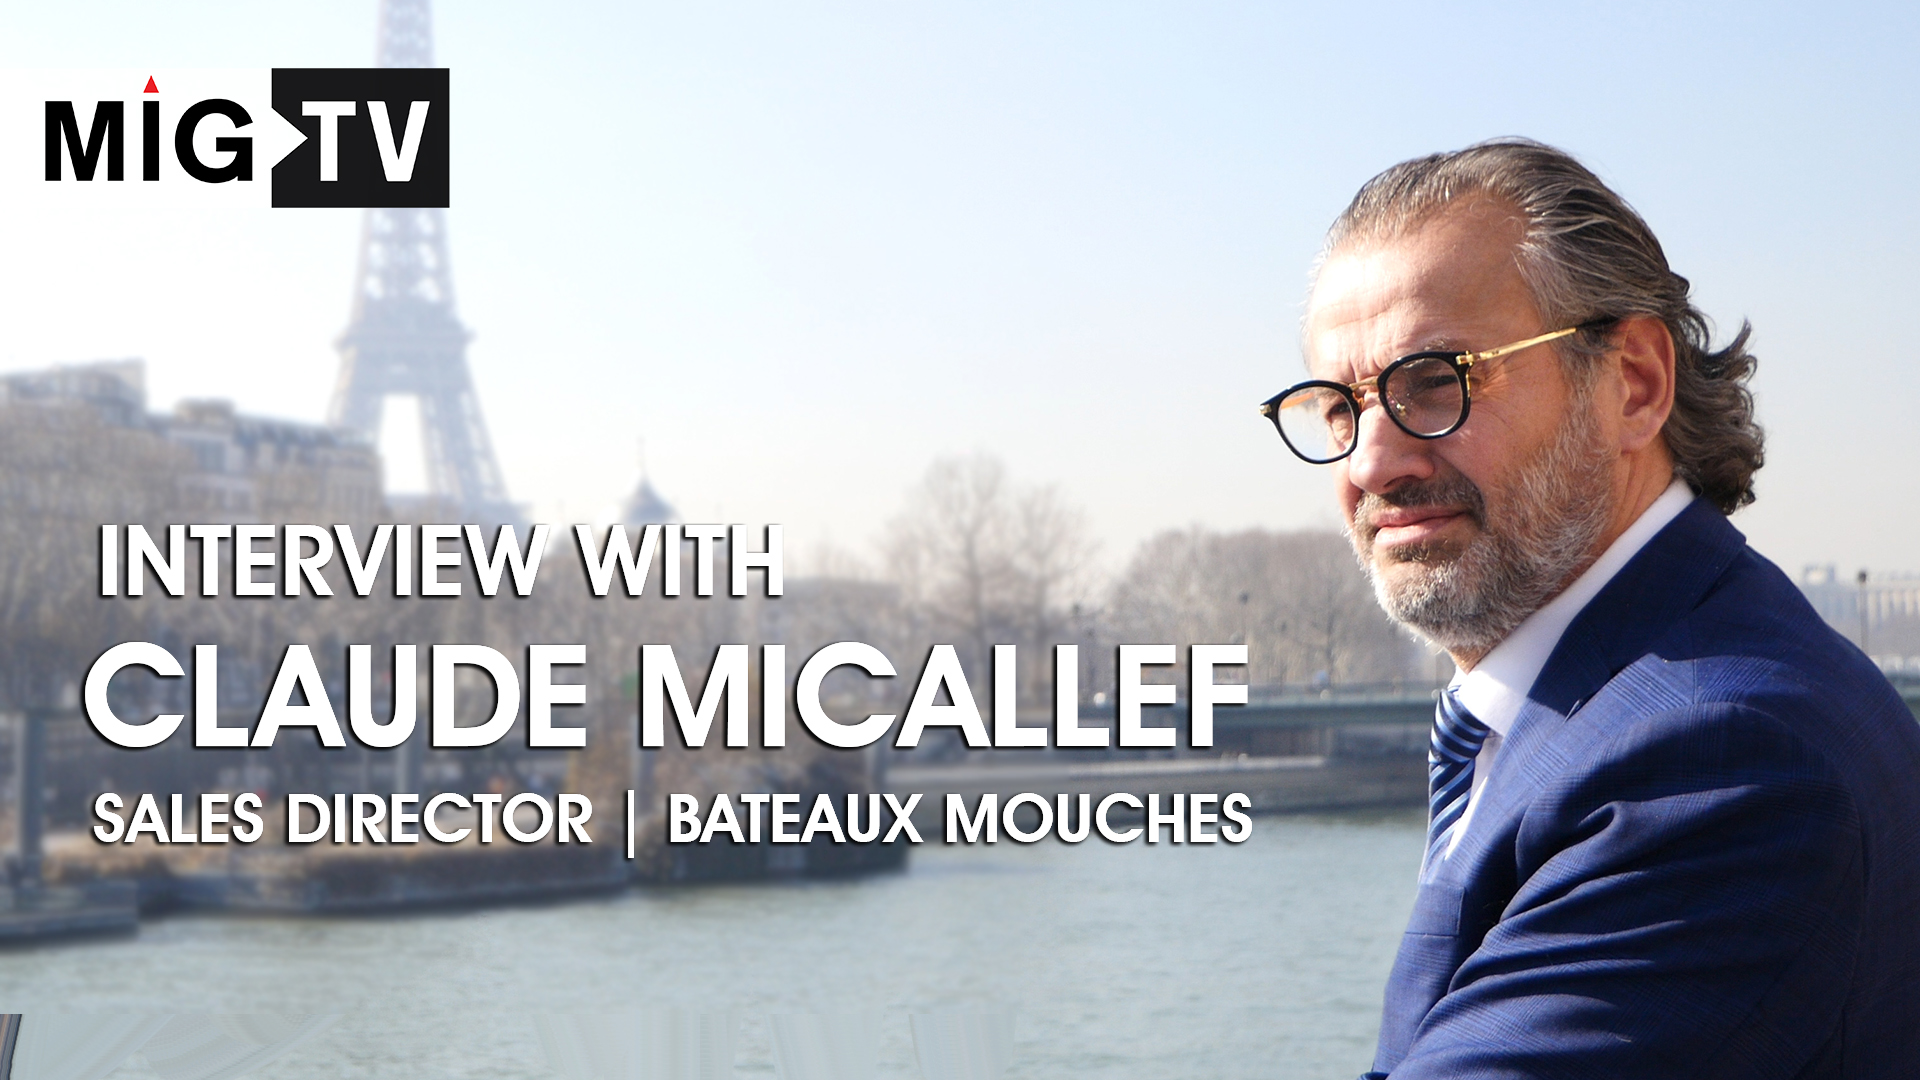 Interview with Claude Micallef